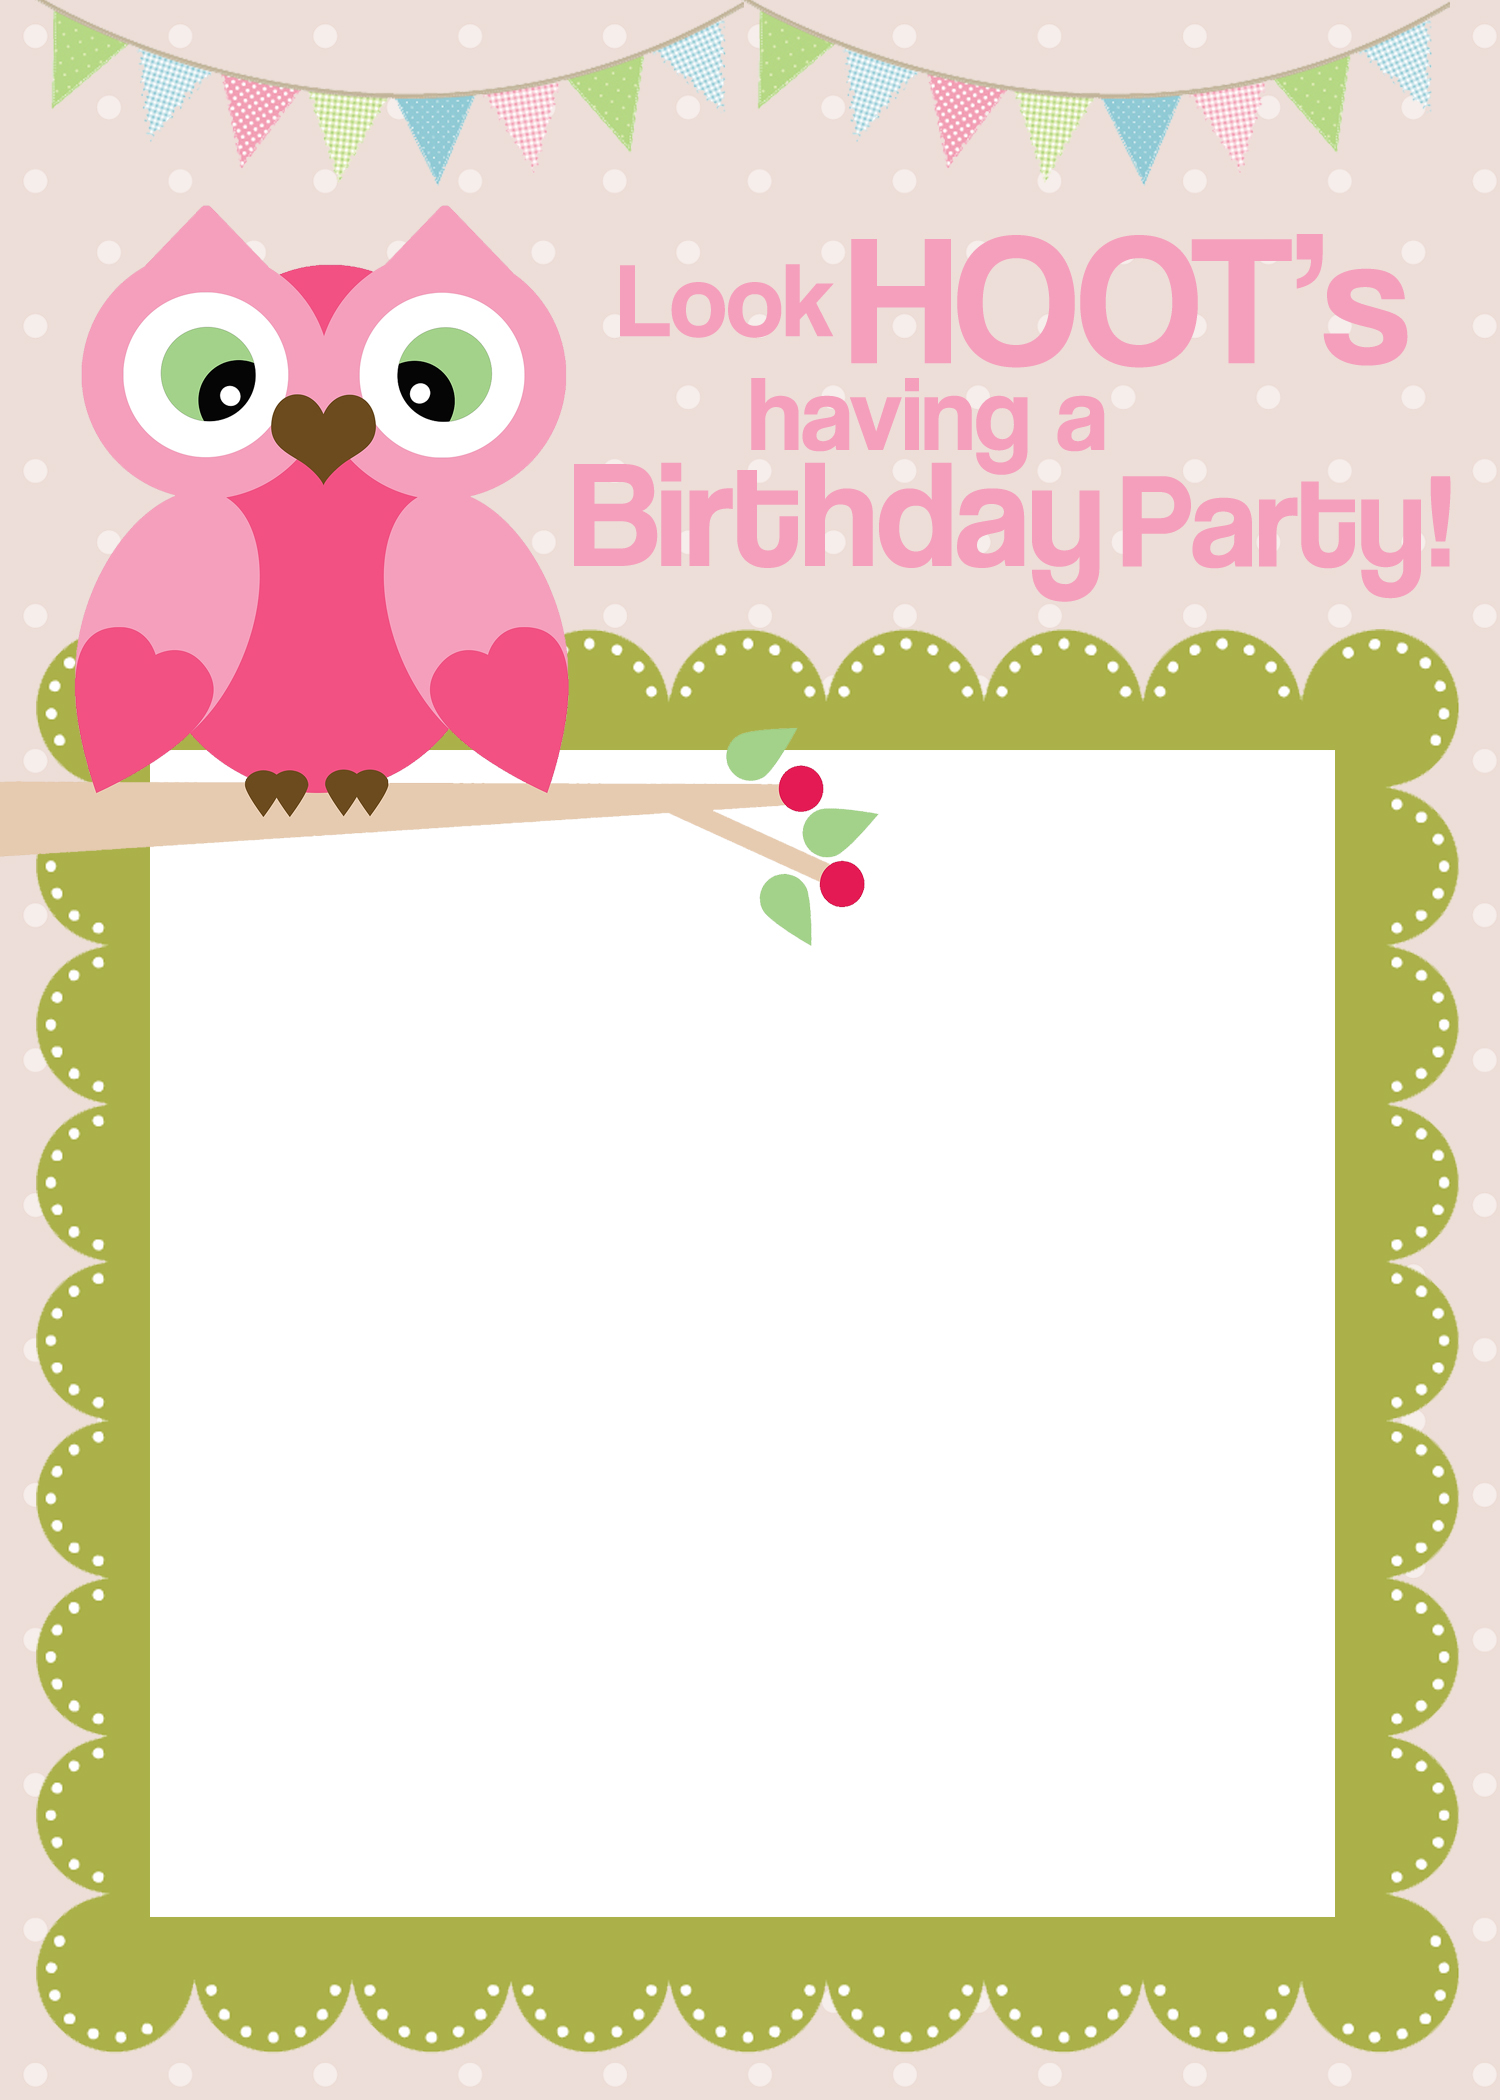 blank birthday card maker free printable ; Best-Birthday-Invitation-Card-Maker-Free-Printable-44-for-Your-HD-Image-Picture-with-Birthday-Invitation-Card-Maker-Free-Printable